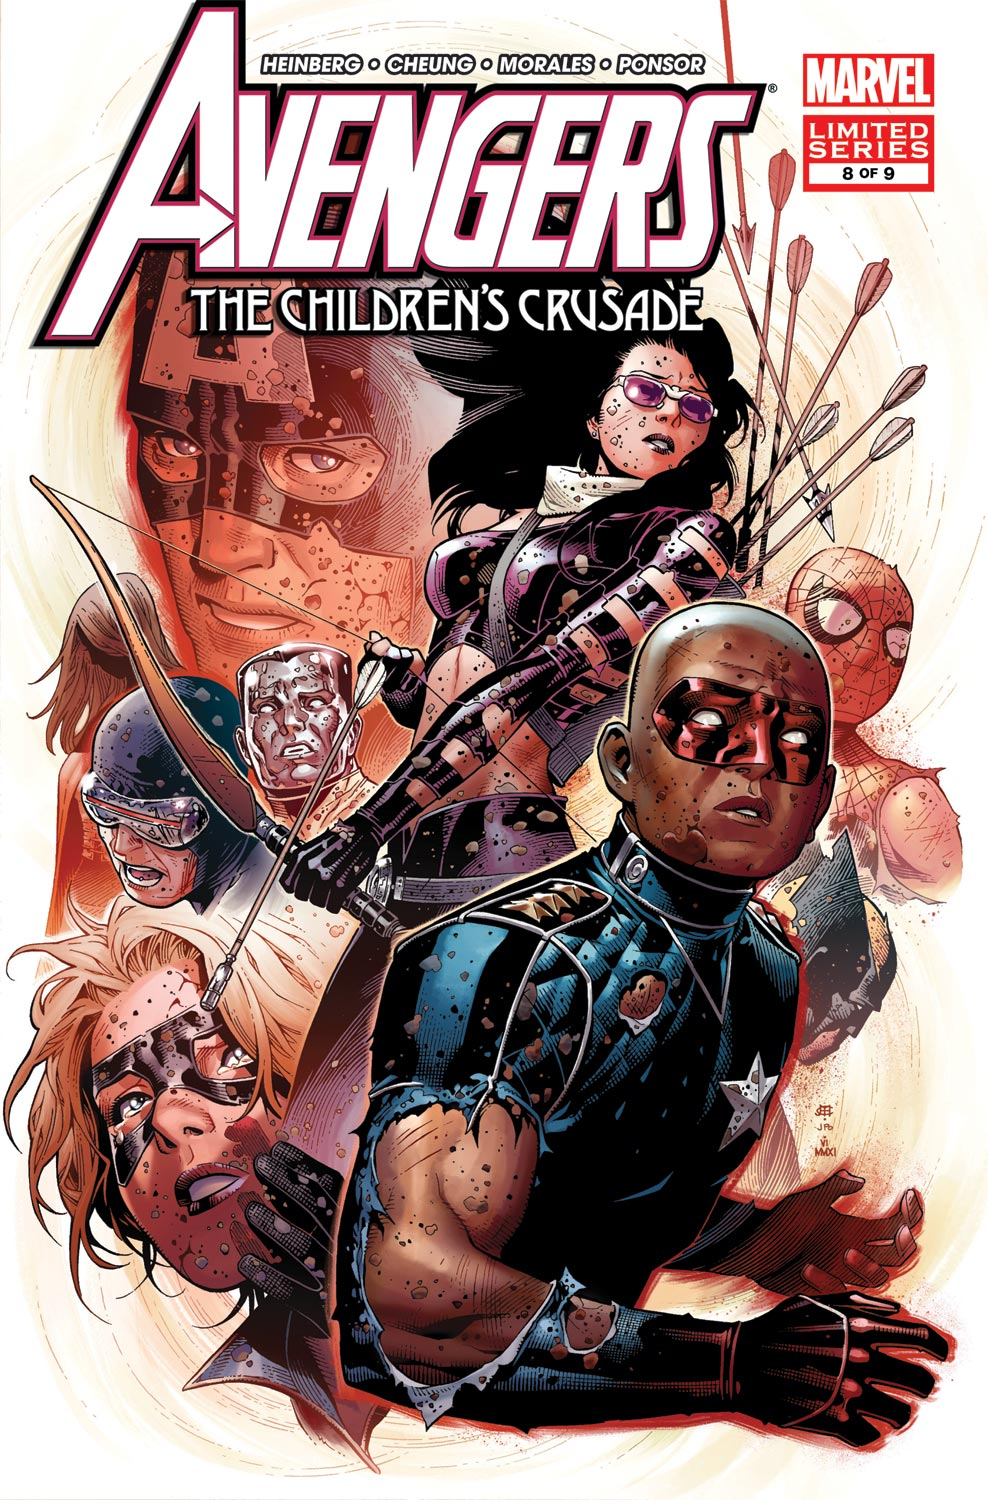 Avengers: The Children's Crusade (2010) #8